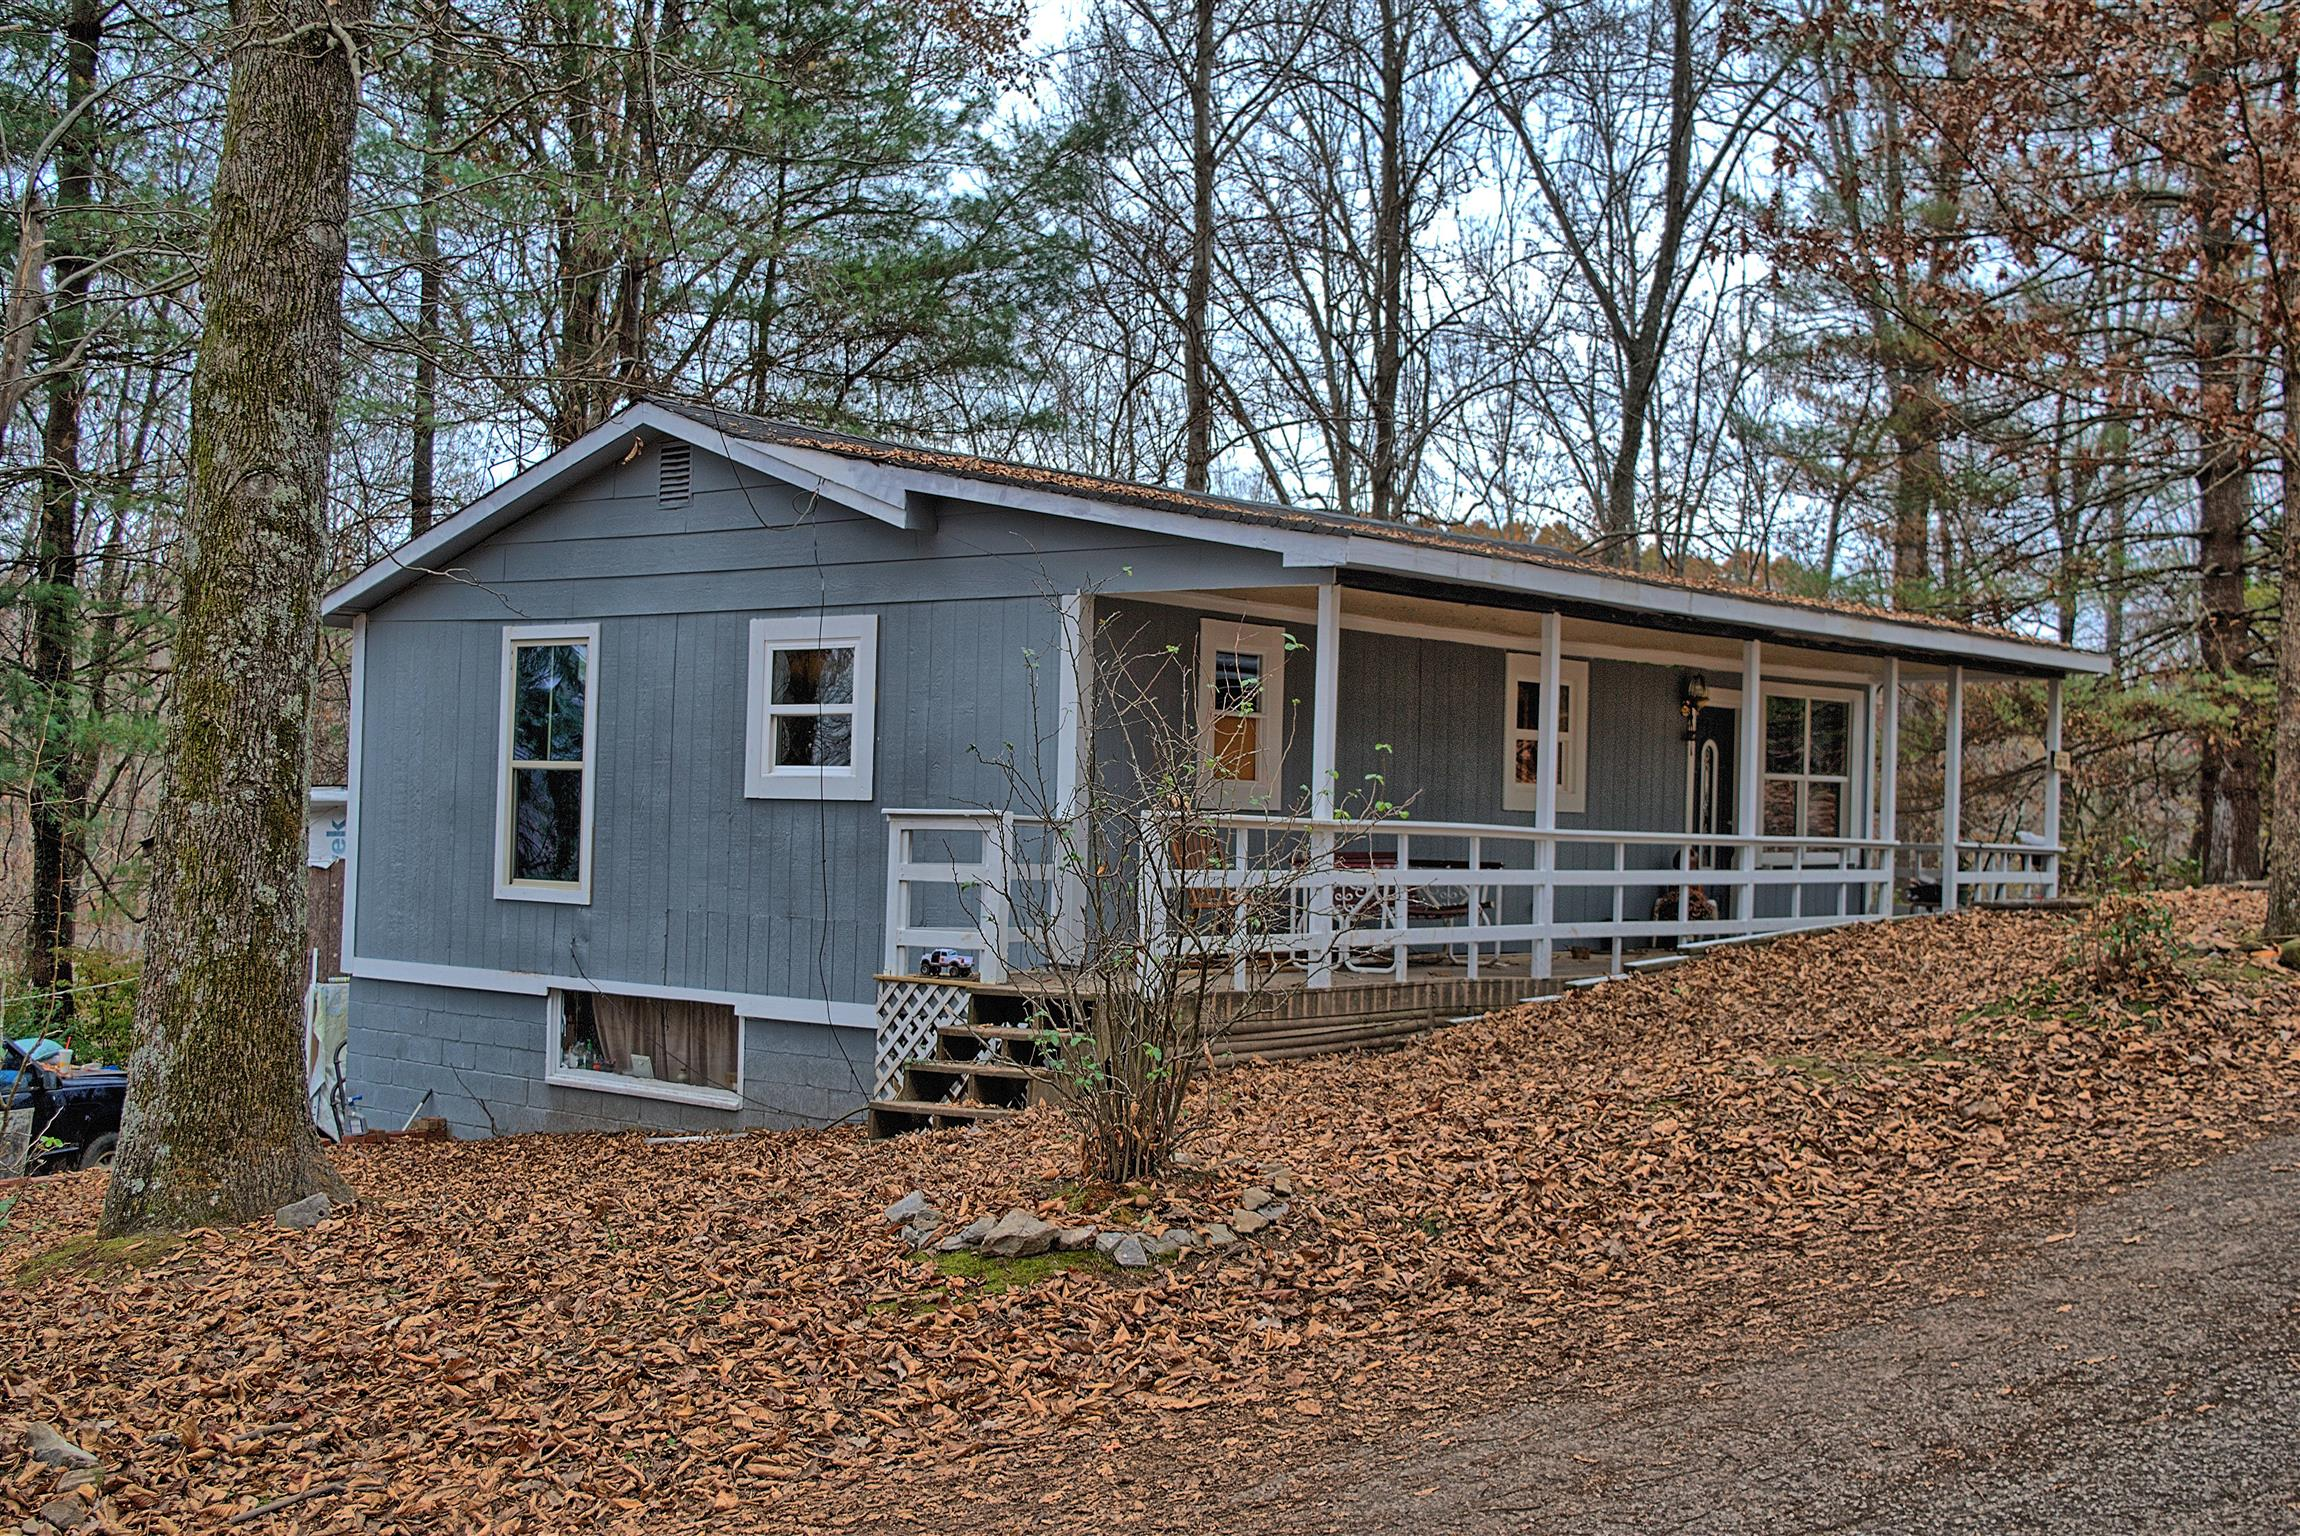 7164 Brush Creek Rd S, Fairview in Williamson County County, TN 37062 Home for Sale